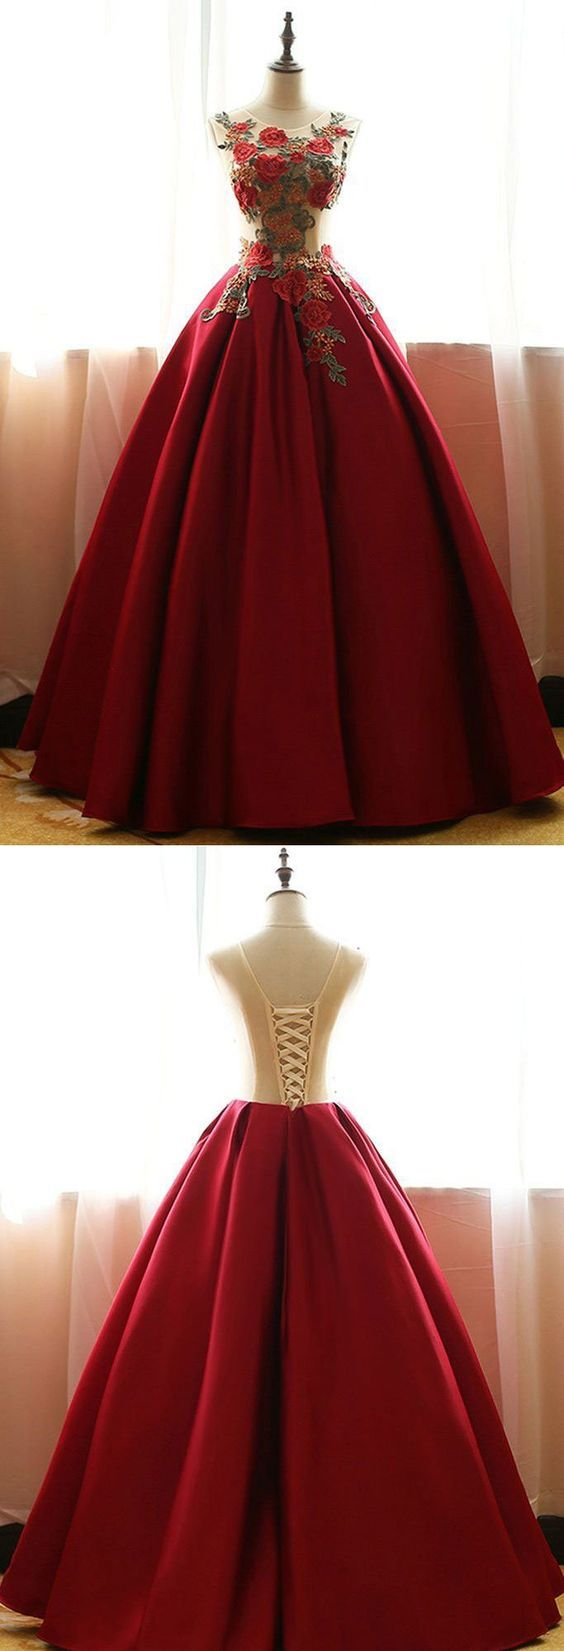 Red quinceanera dressessatin prom dresses with flowersball gown